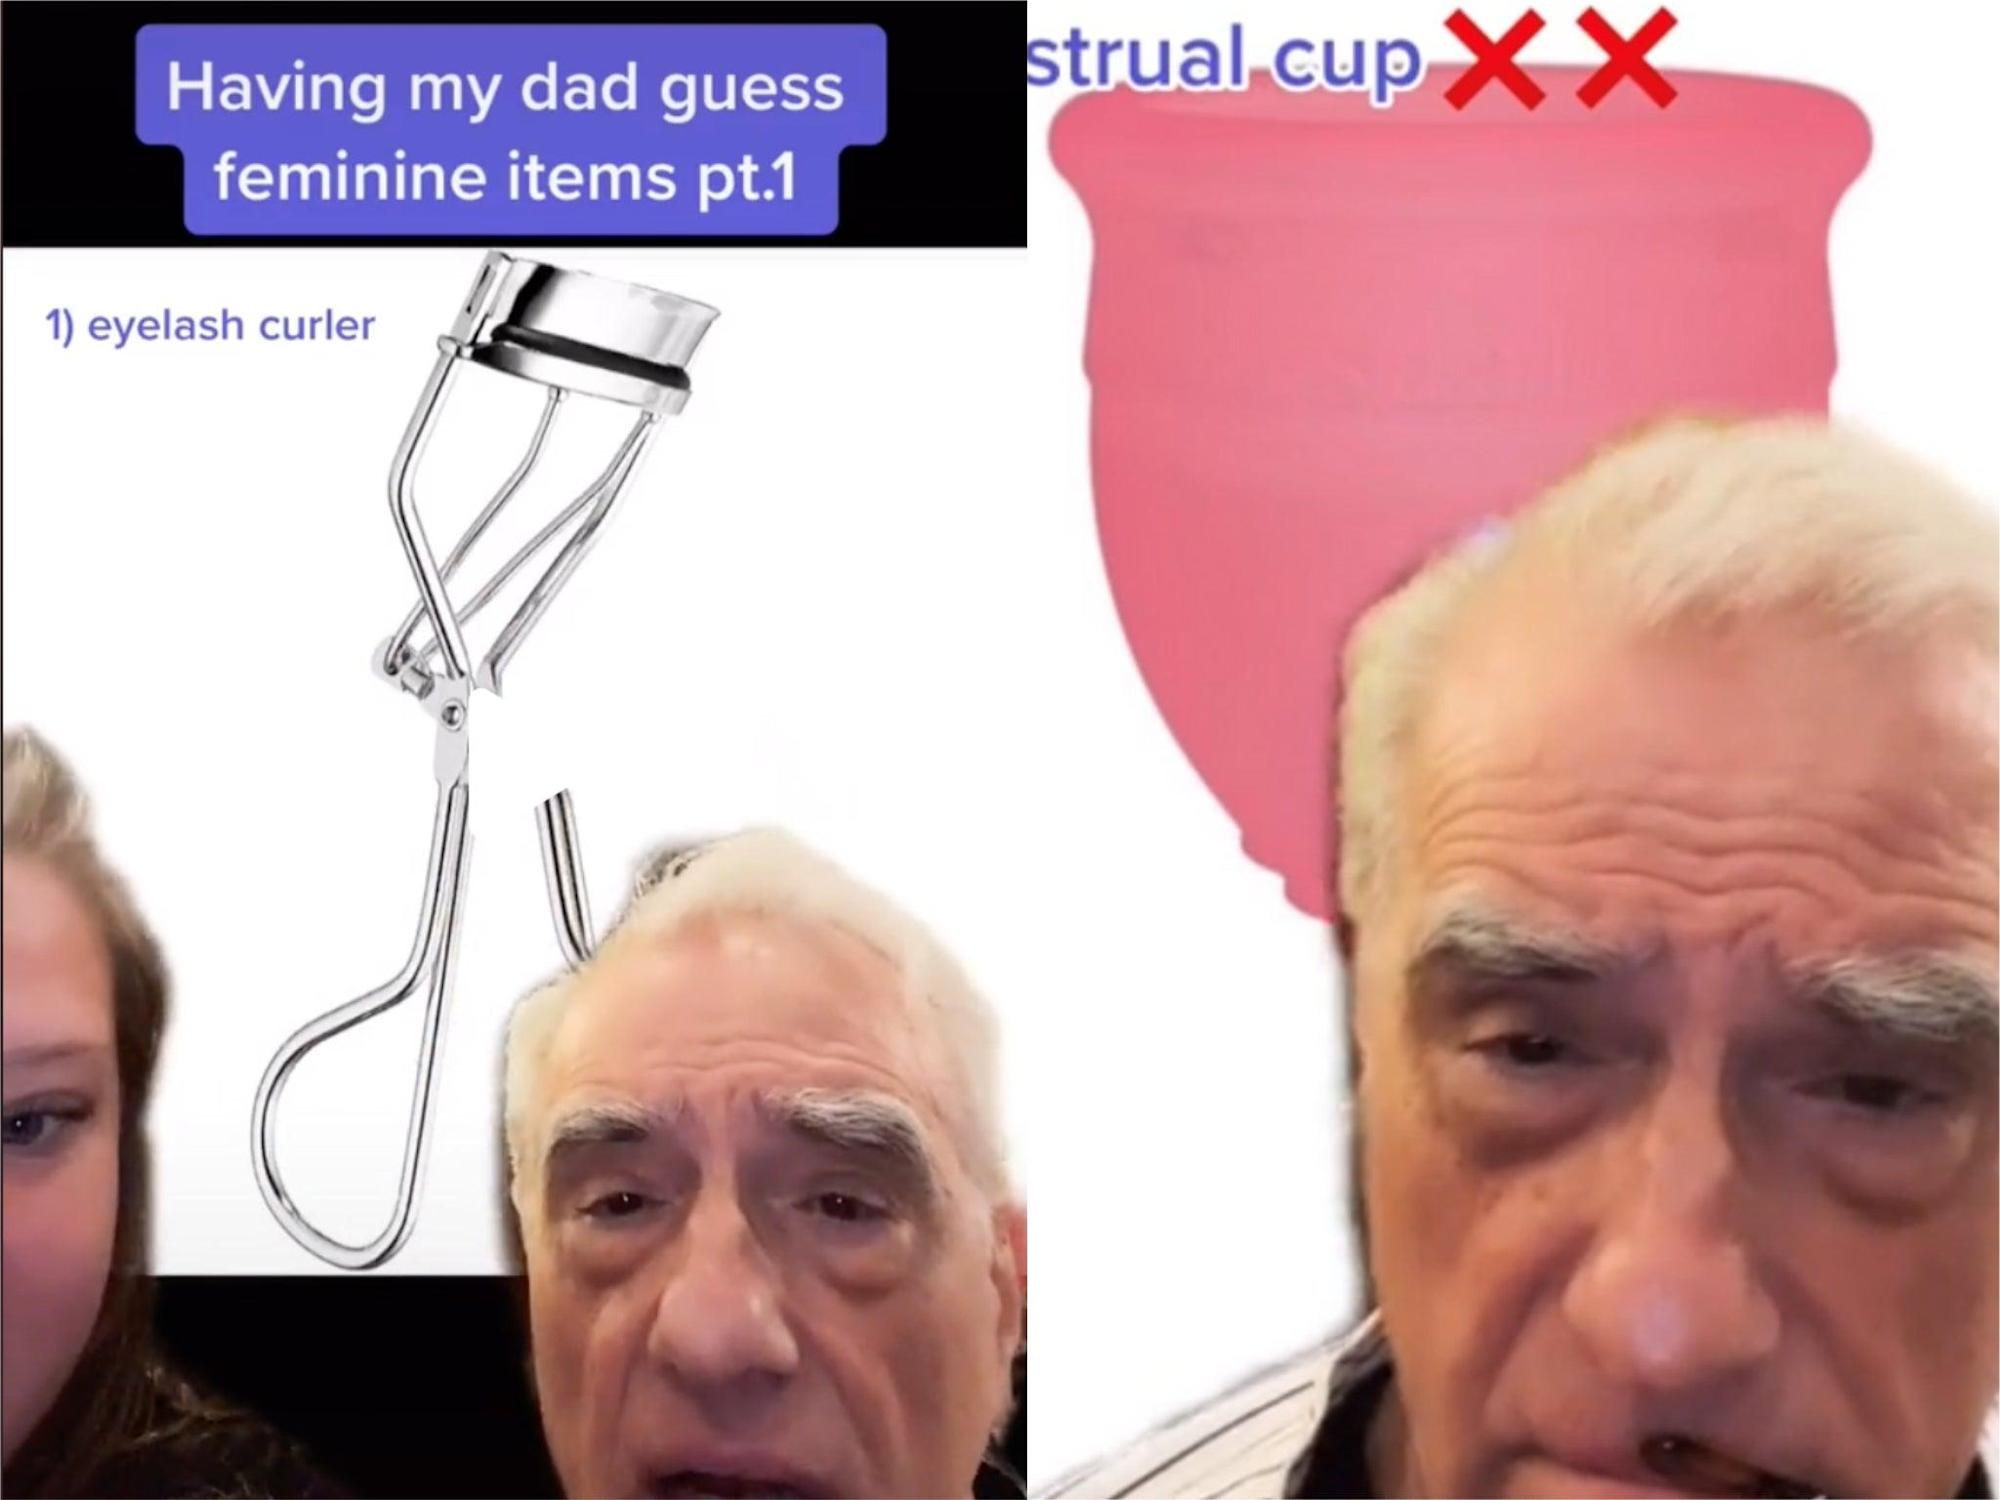 Martin Scorsese goes viral as he guesses 'feminine items' in hilarious video with daughter Francesca